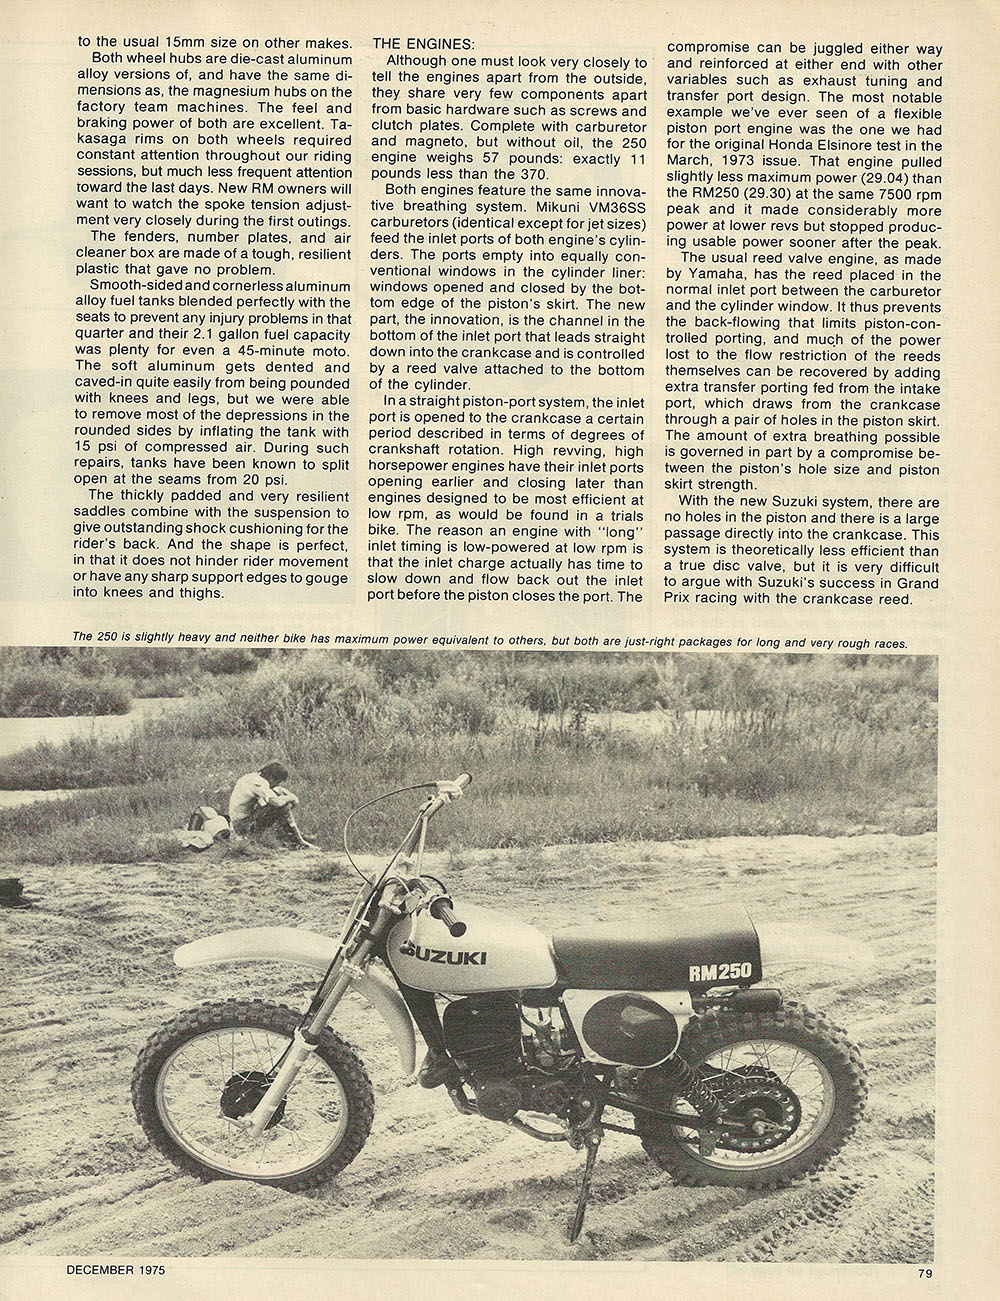 1975 Suzuki RM250 and RM370 off road test 3.JPG